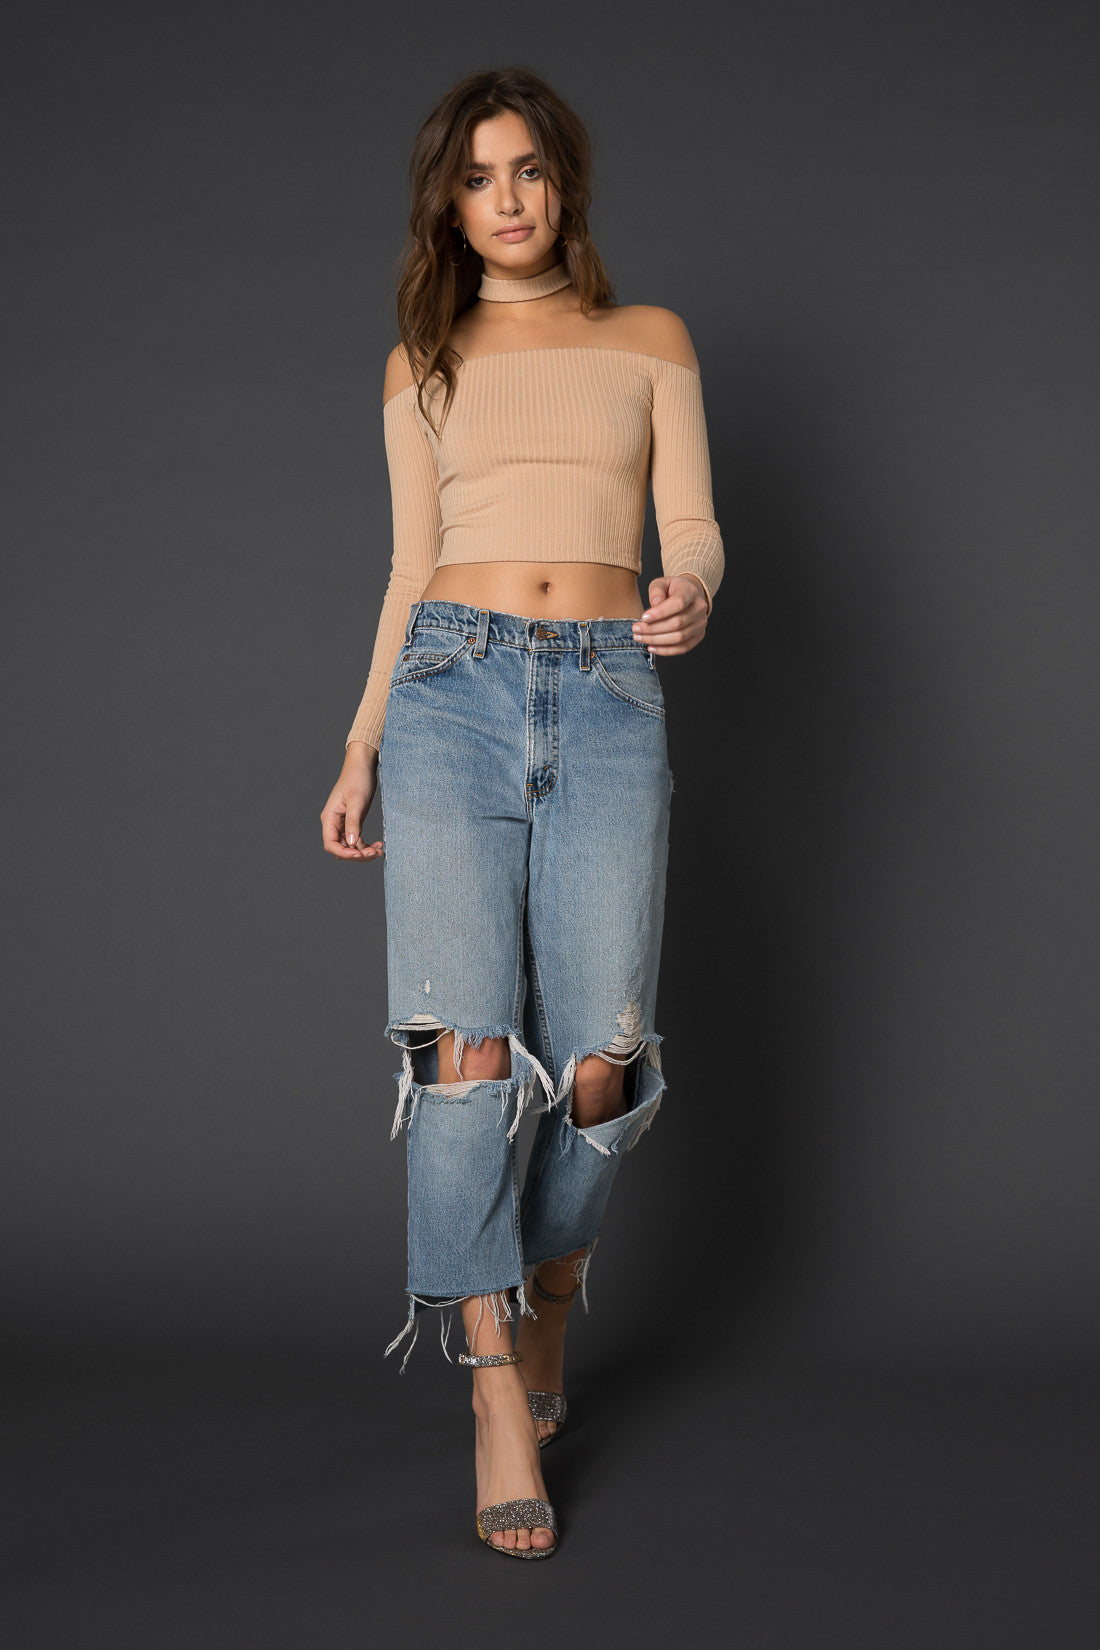 Zuri Ribbed Crop Top with Choker